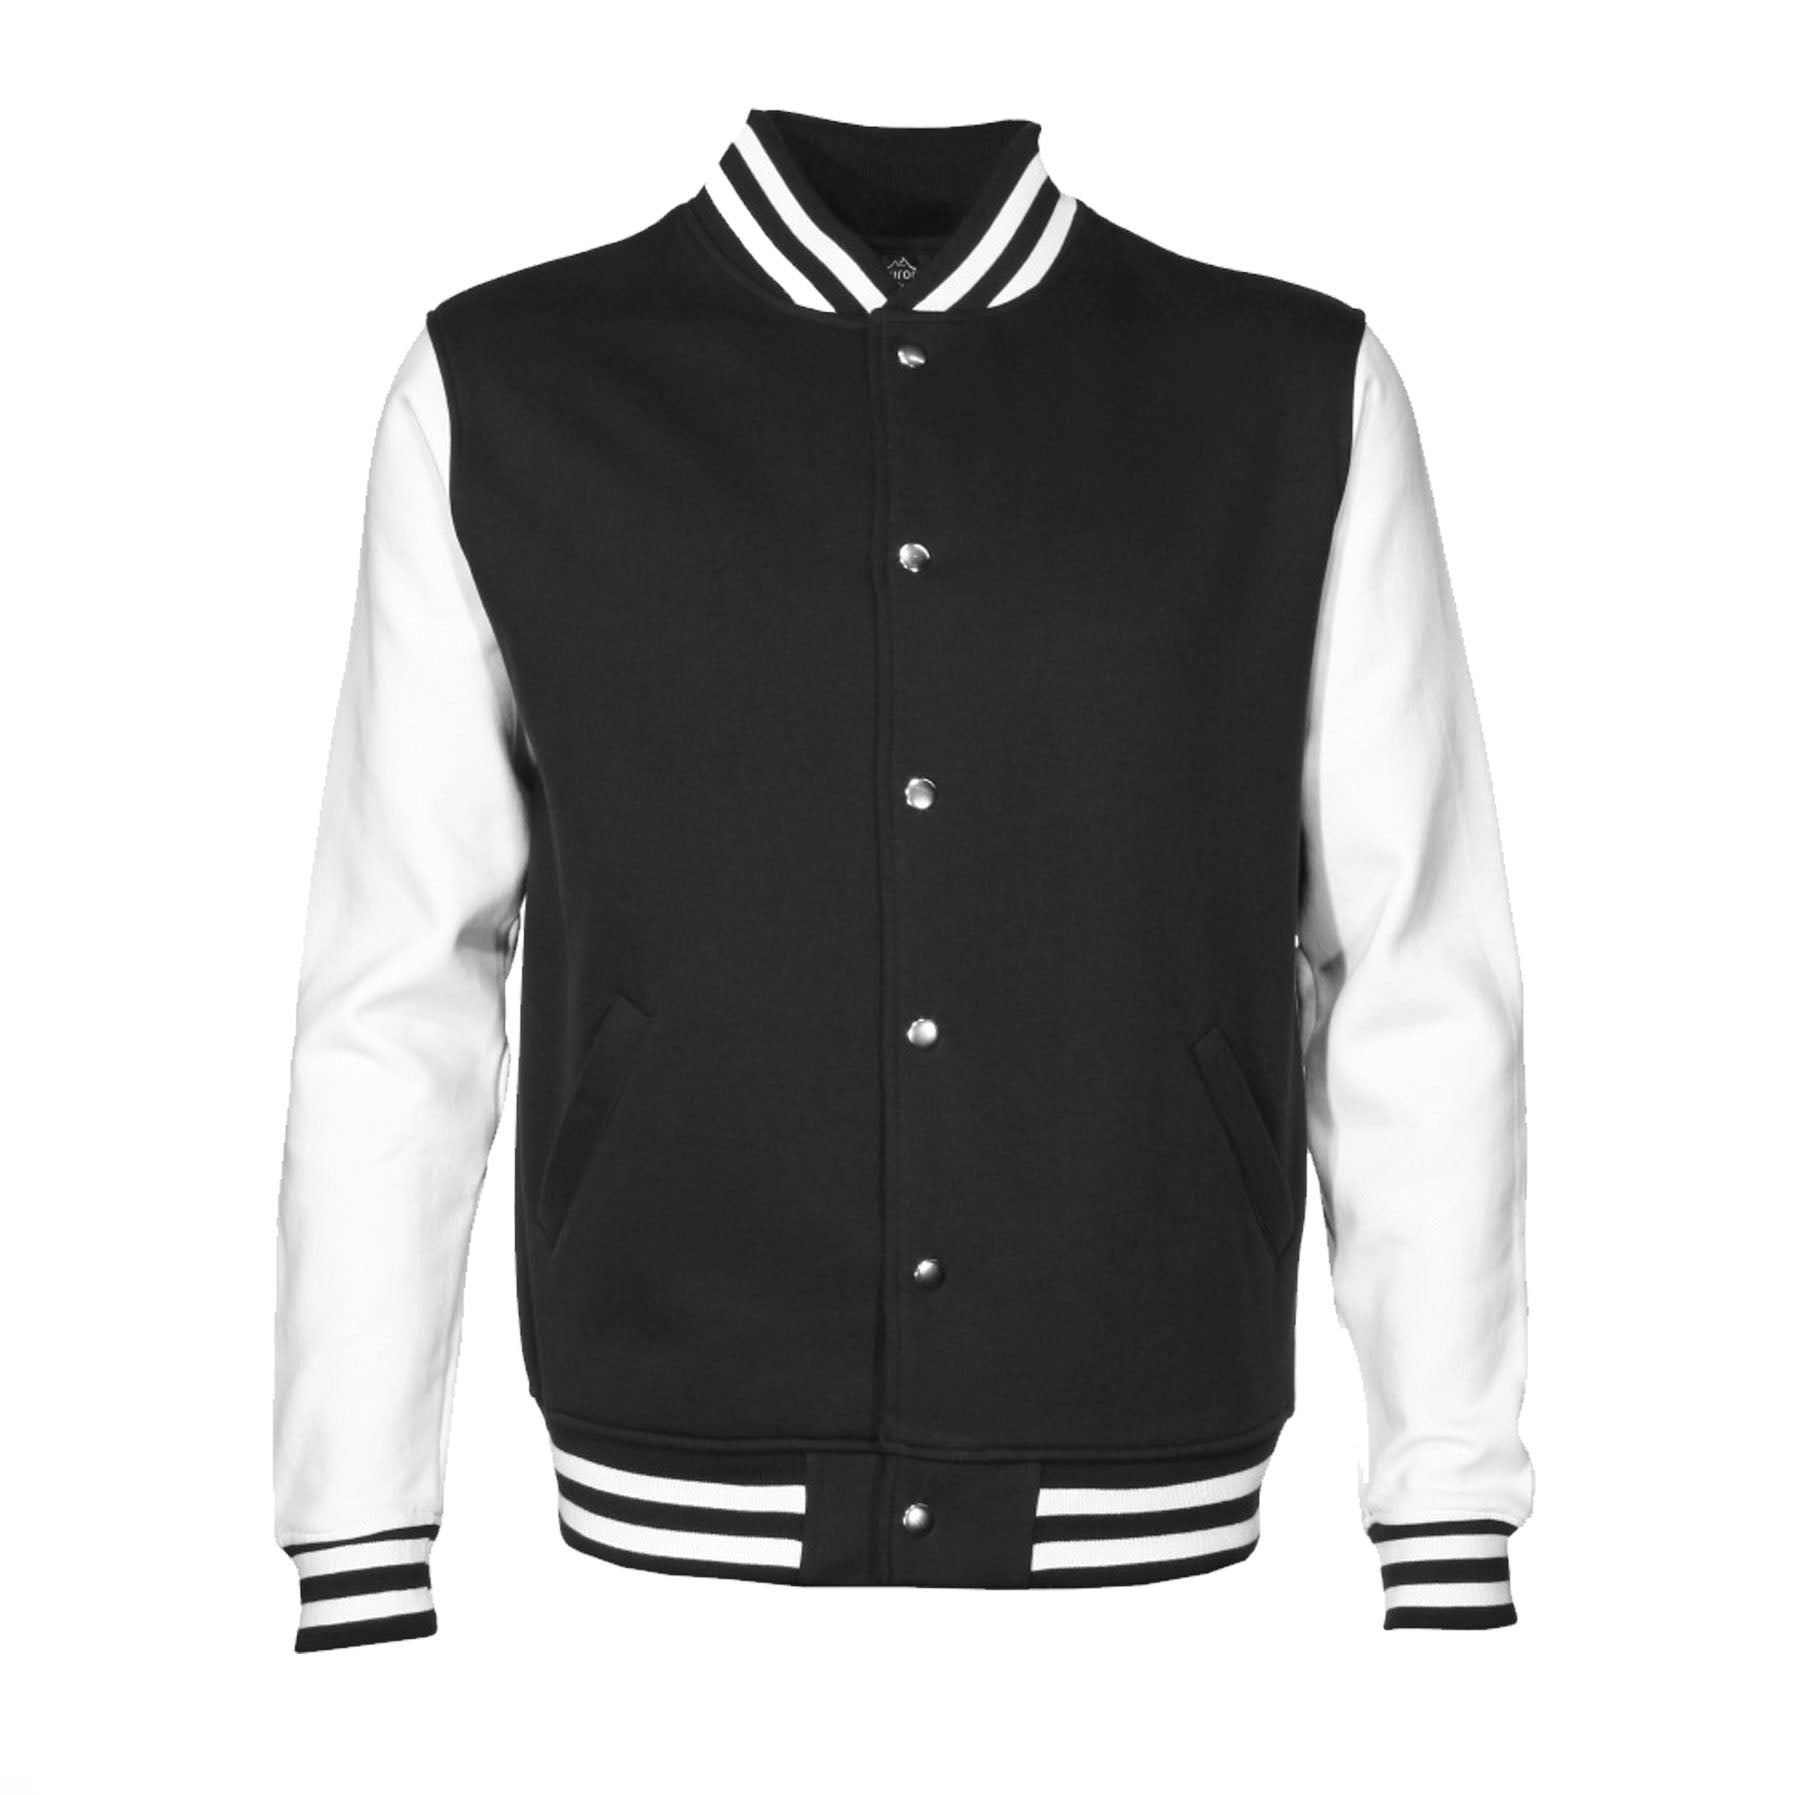 Personalised Letterman Jacket